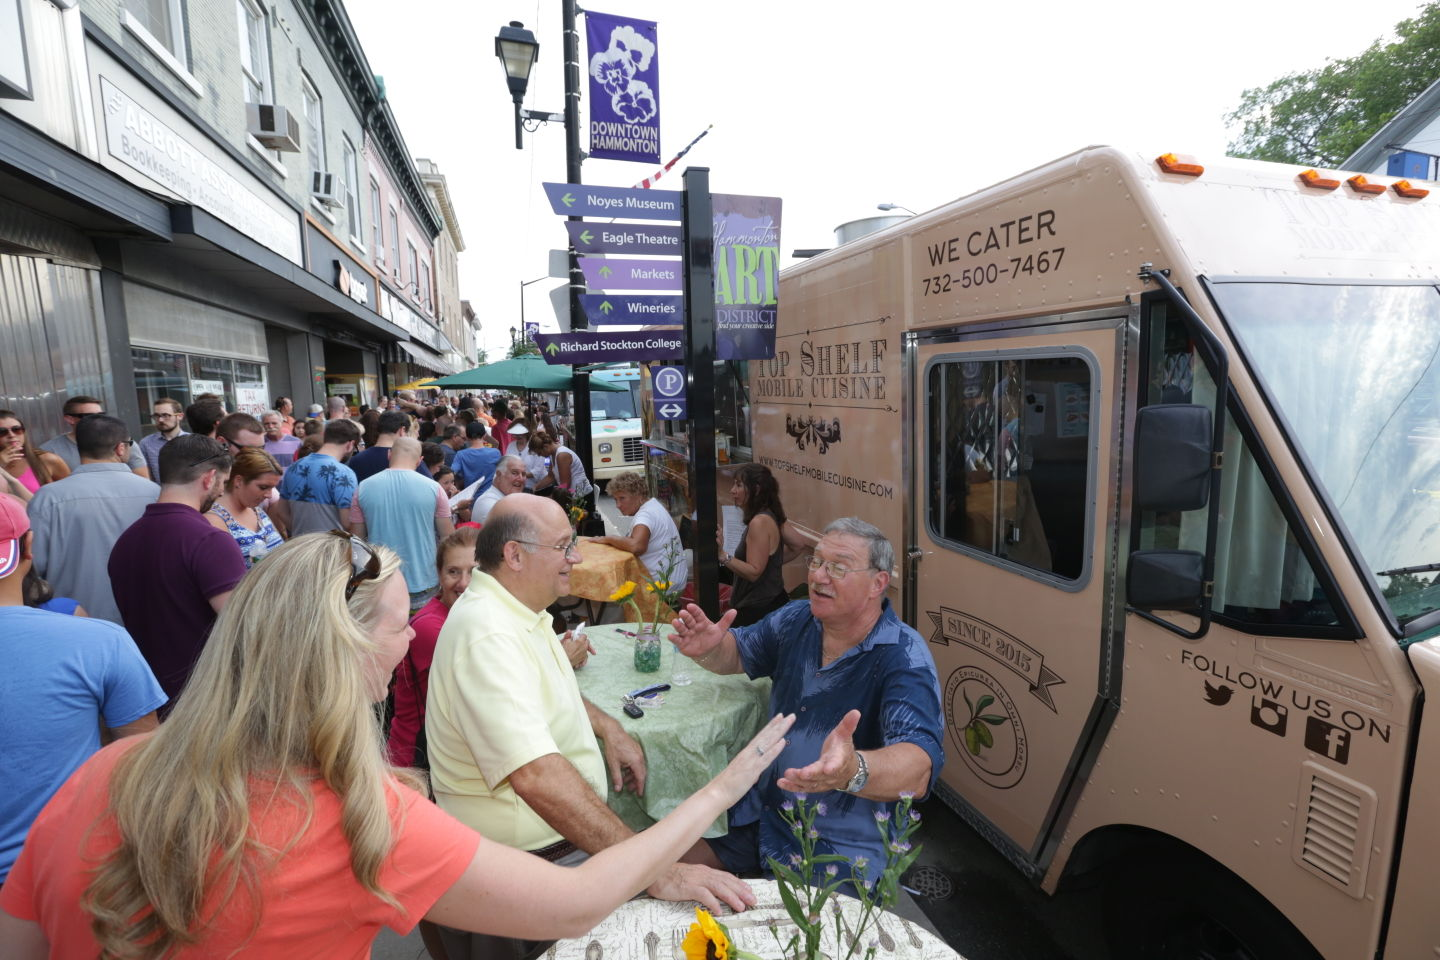 List of summer fests in South Jersey